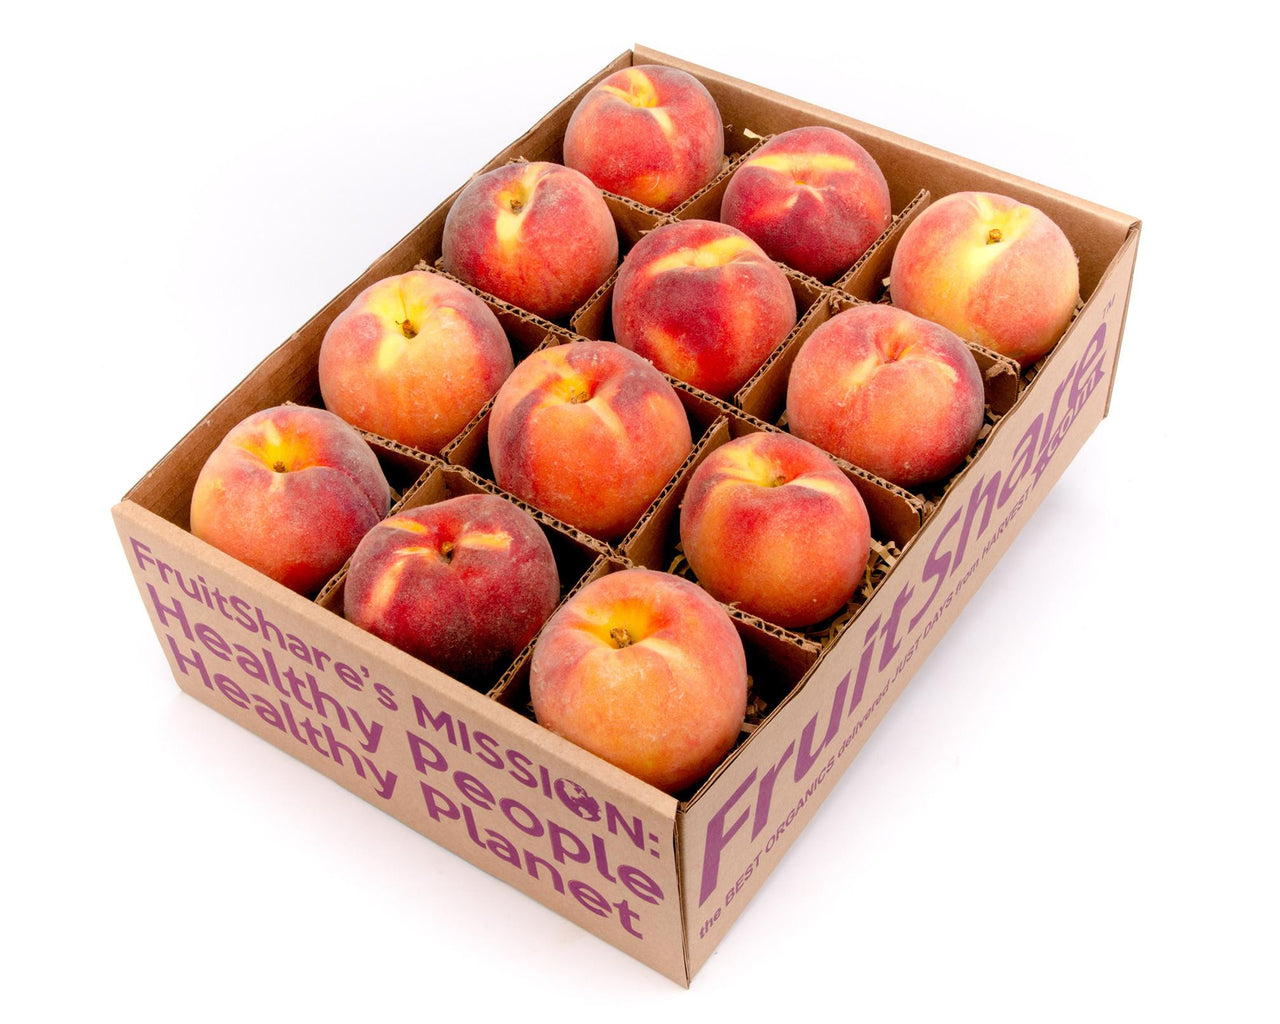 Peaches - Colorado - organic - fruit gift box - FruitShare